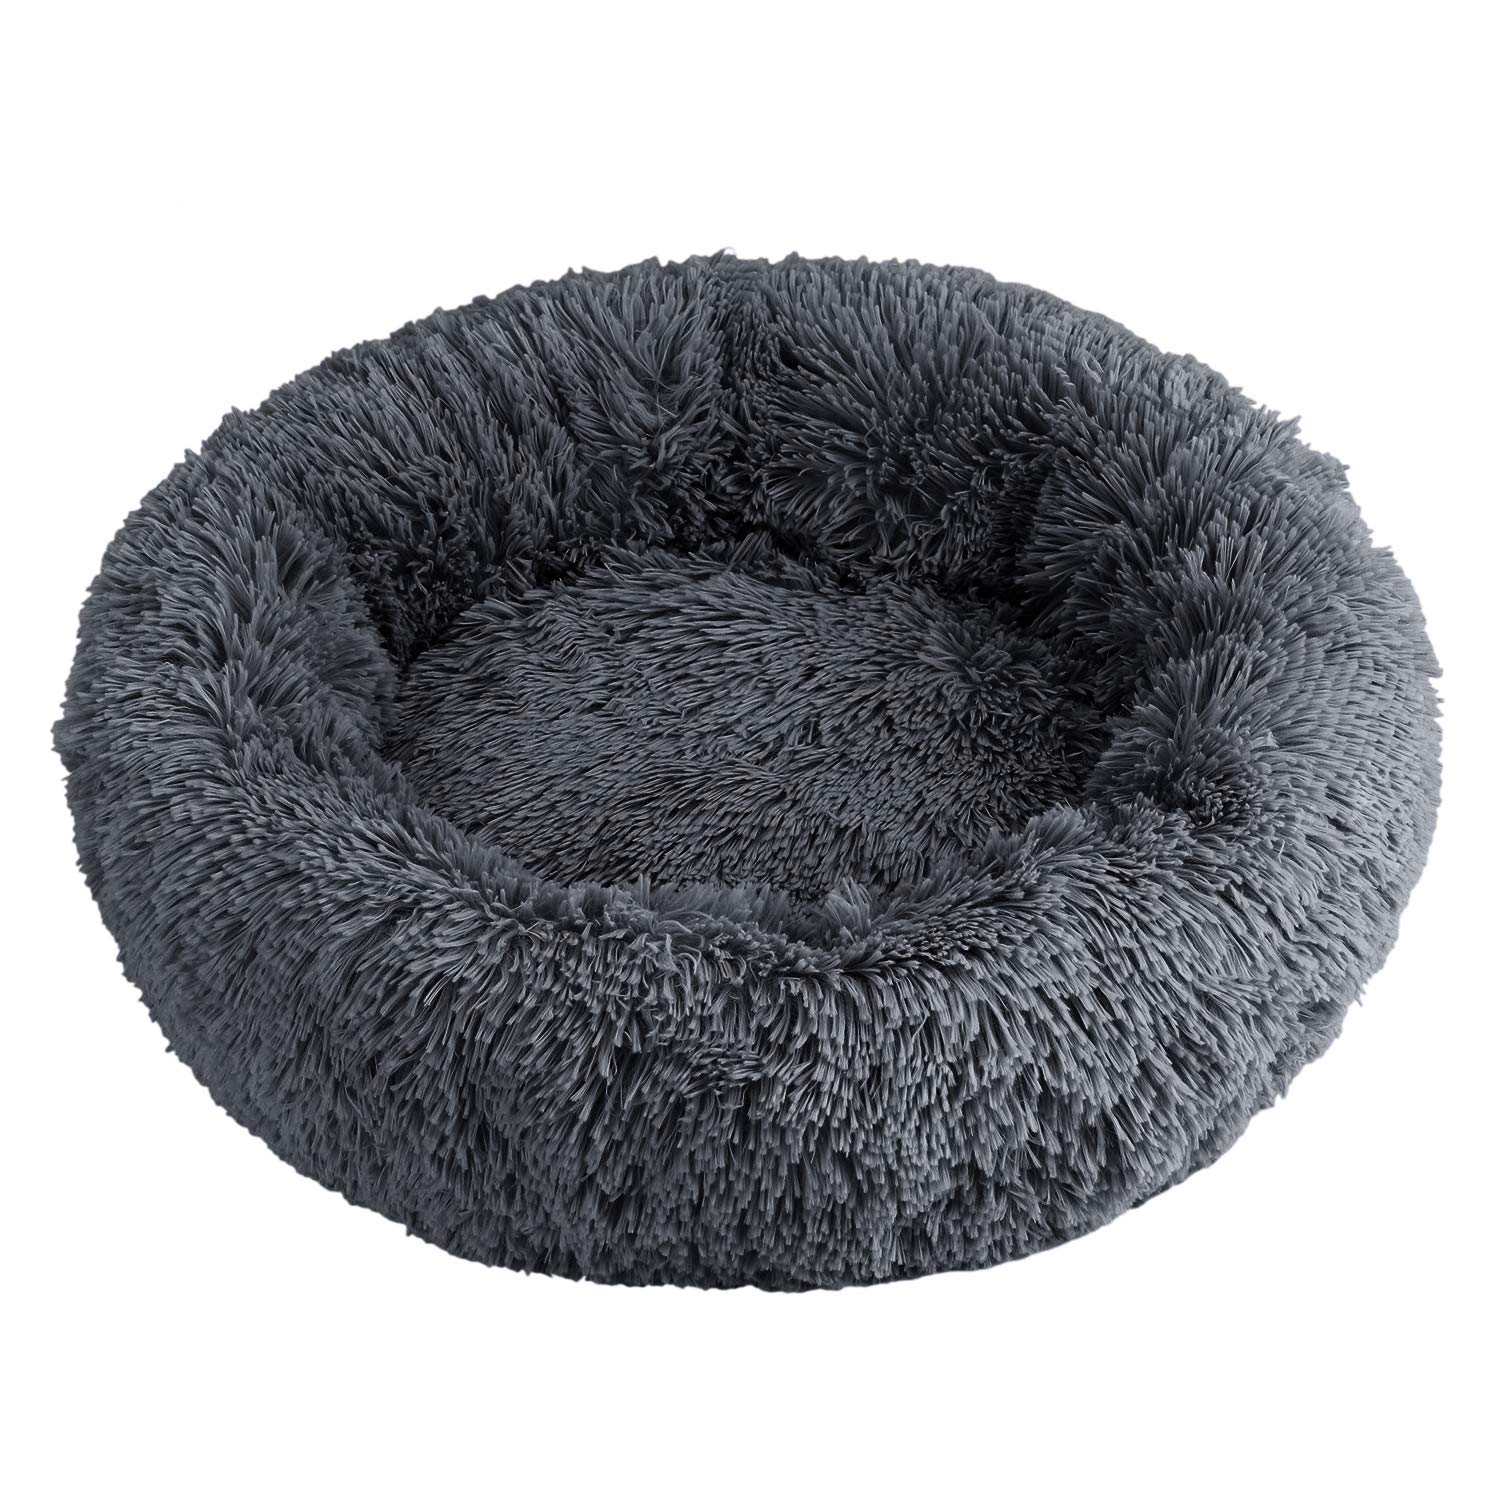 LONTG Calming Pet Bed Cushion Fluffy Plush Cat Bed Puppy Donut Cuddle Bed Cozy Pet Nest Pet Sofa Round Basket Bed Sleeping Bed Mat For Small Medium Dogs Cats Kitten Non-Slip Bottom Washable 55cm